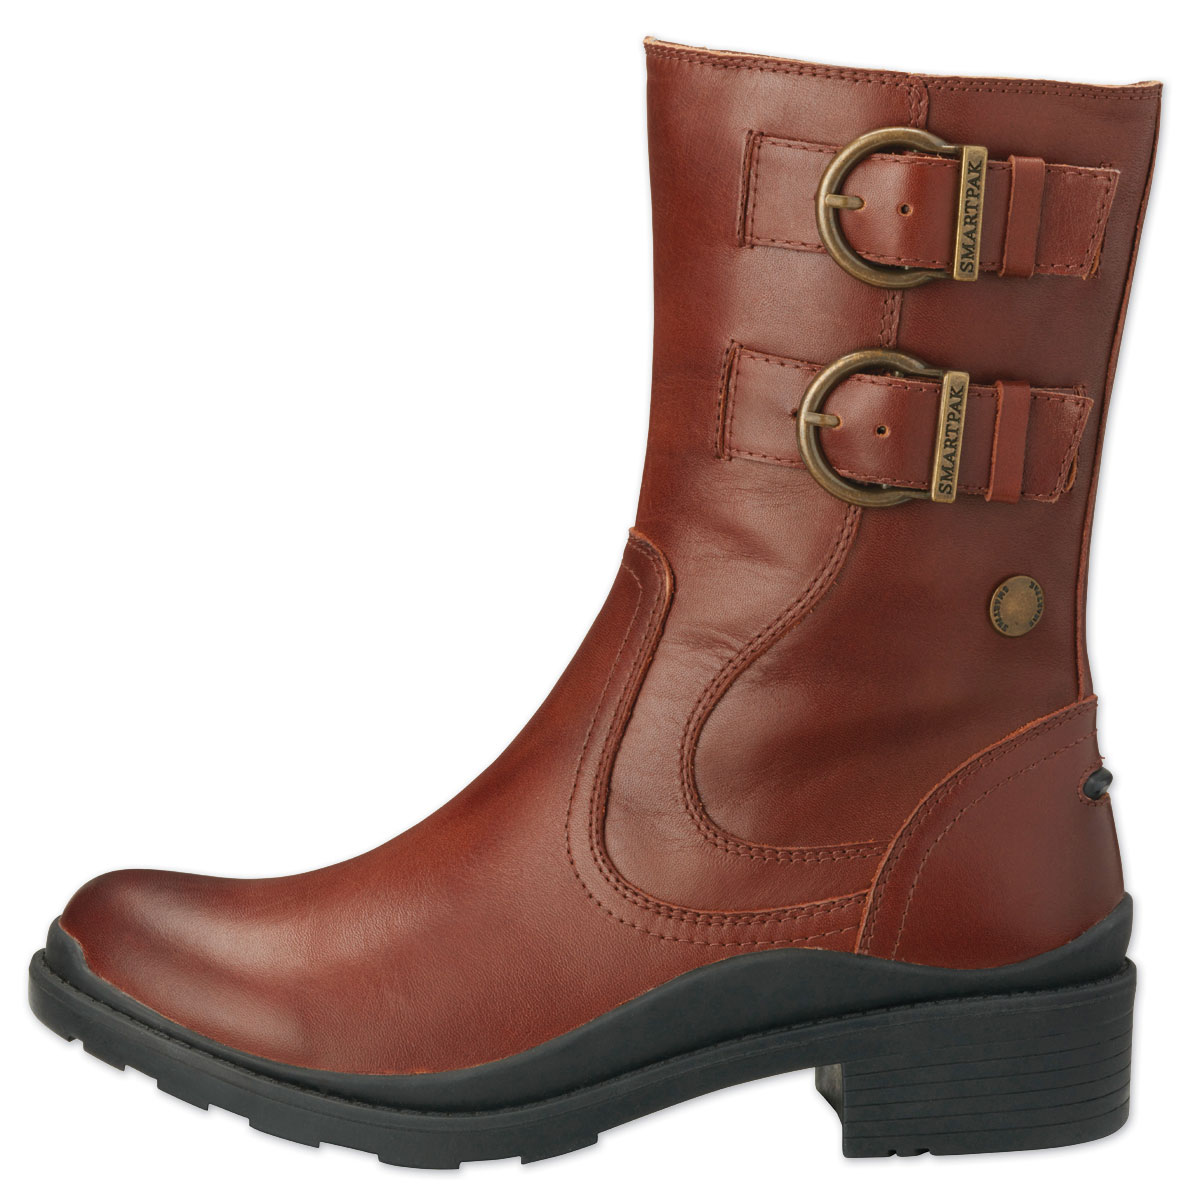 Solstice Classic Short Leather Boot by SmartPak